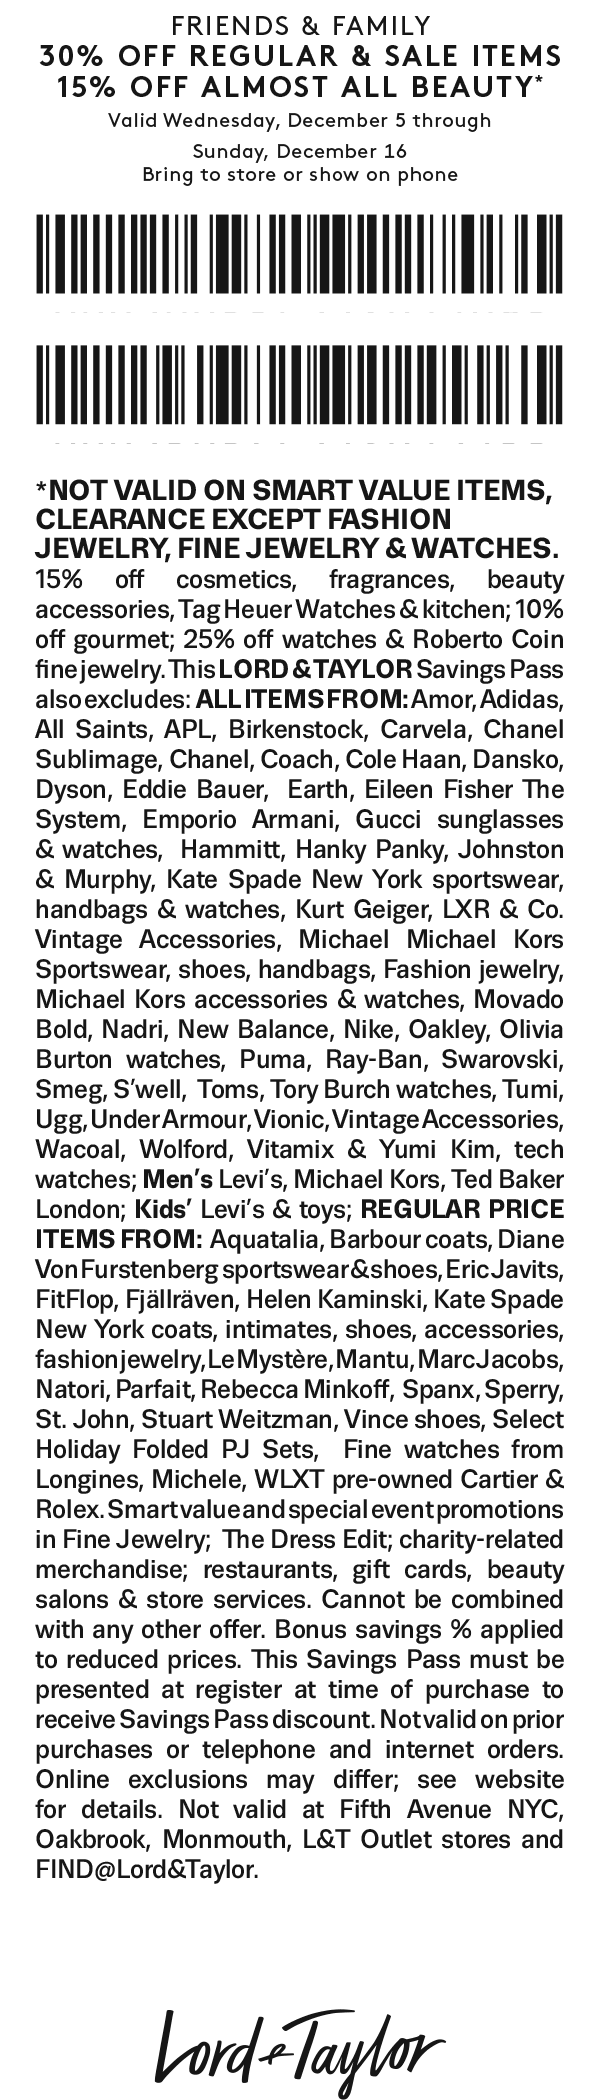 Lord & Taylor Coupon May 2020 30% off at Lord & Taylor, or online via promo code FRIENDS